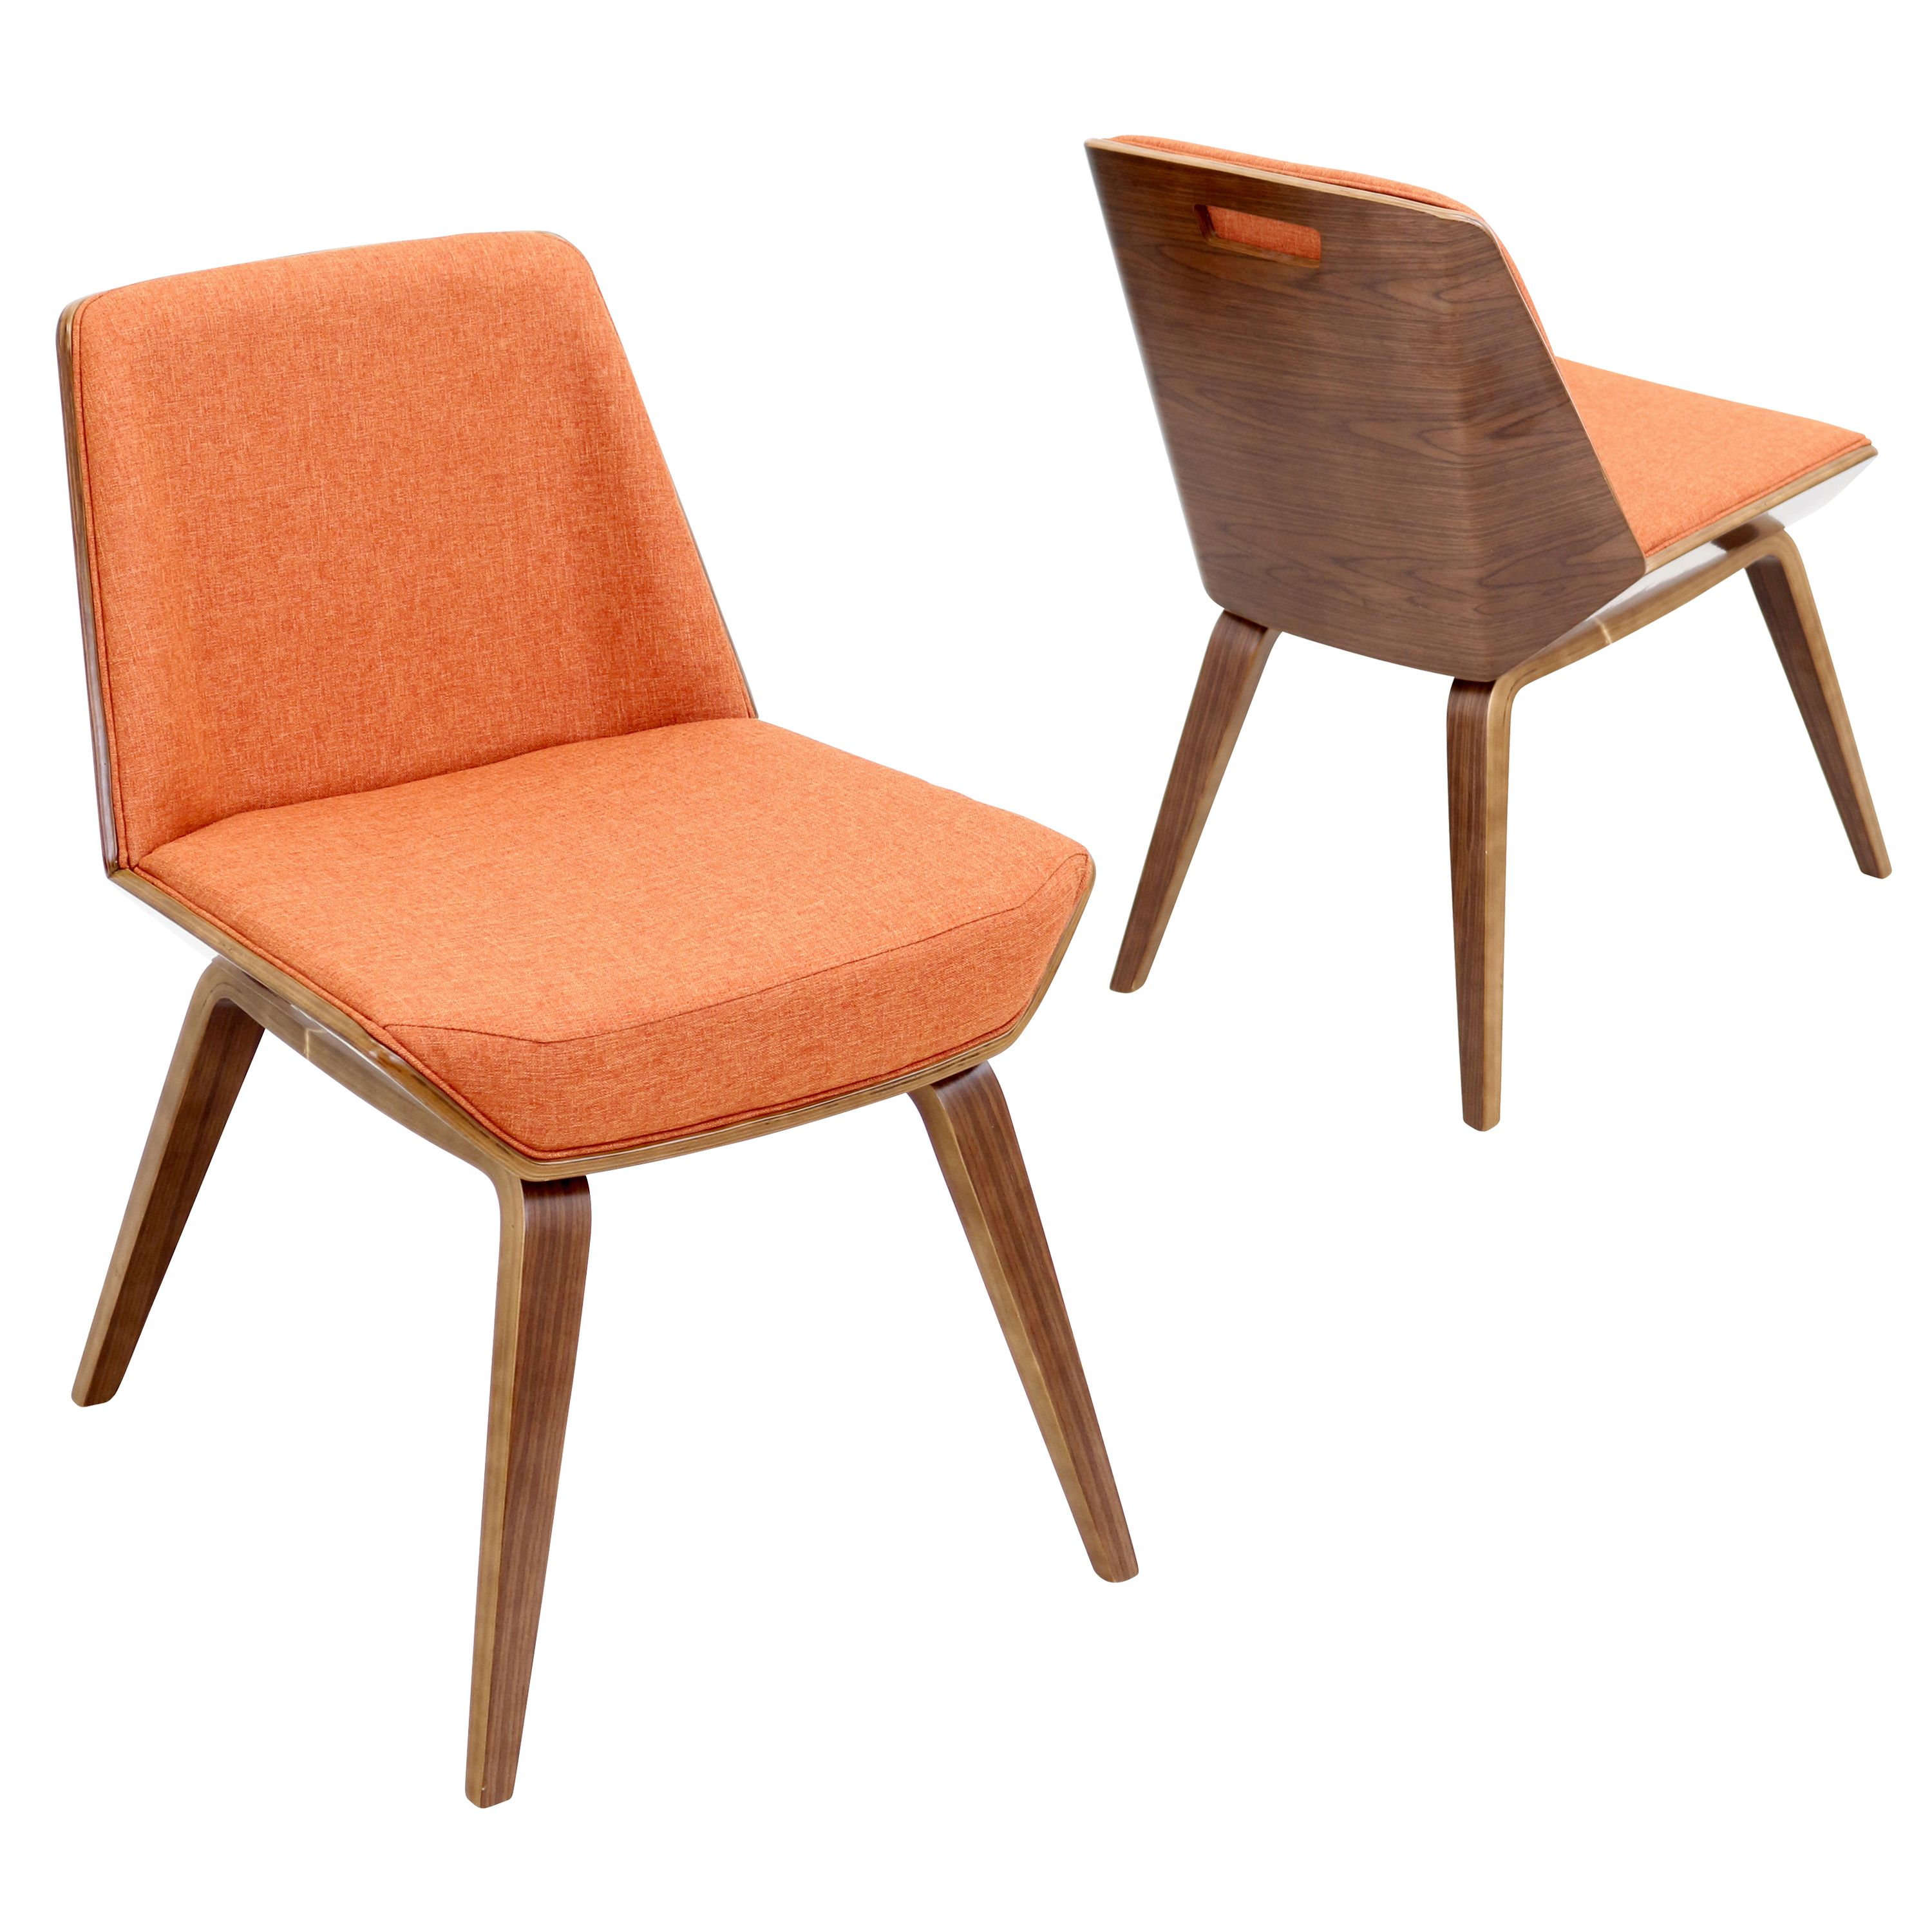 Lumisource Corazza Accent - Dining Chair, Walnut And Orange | Products